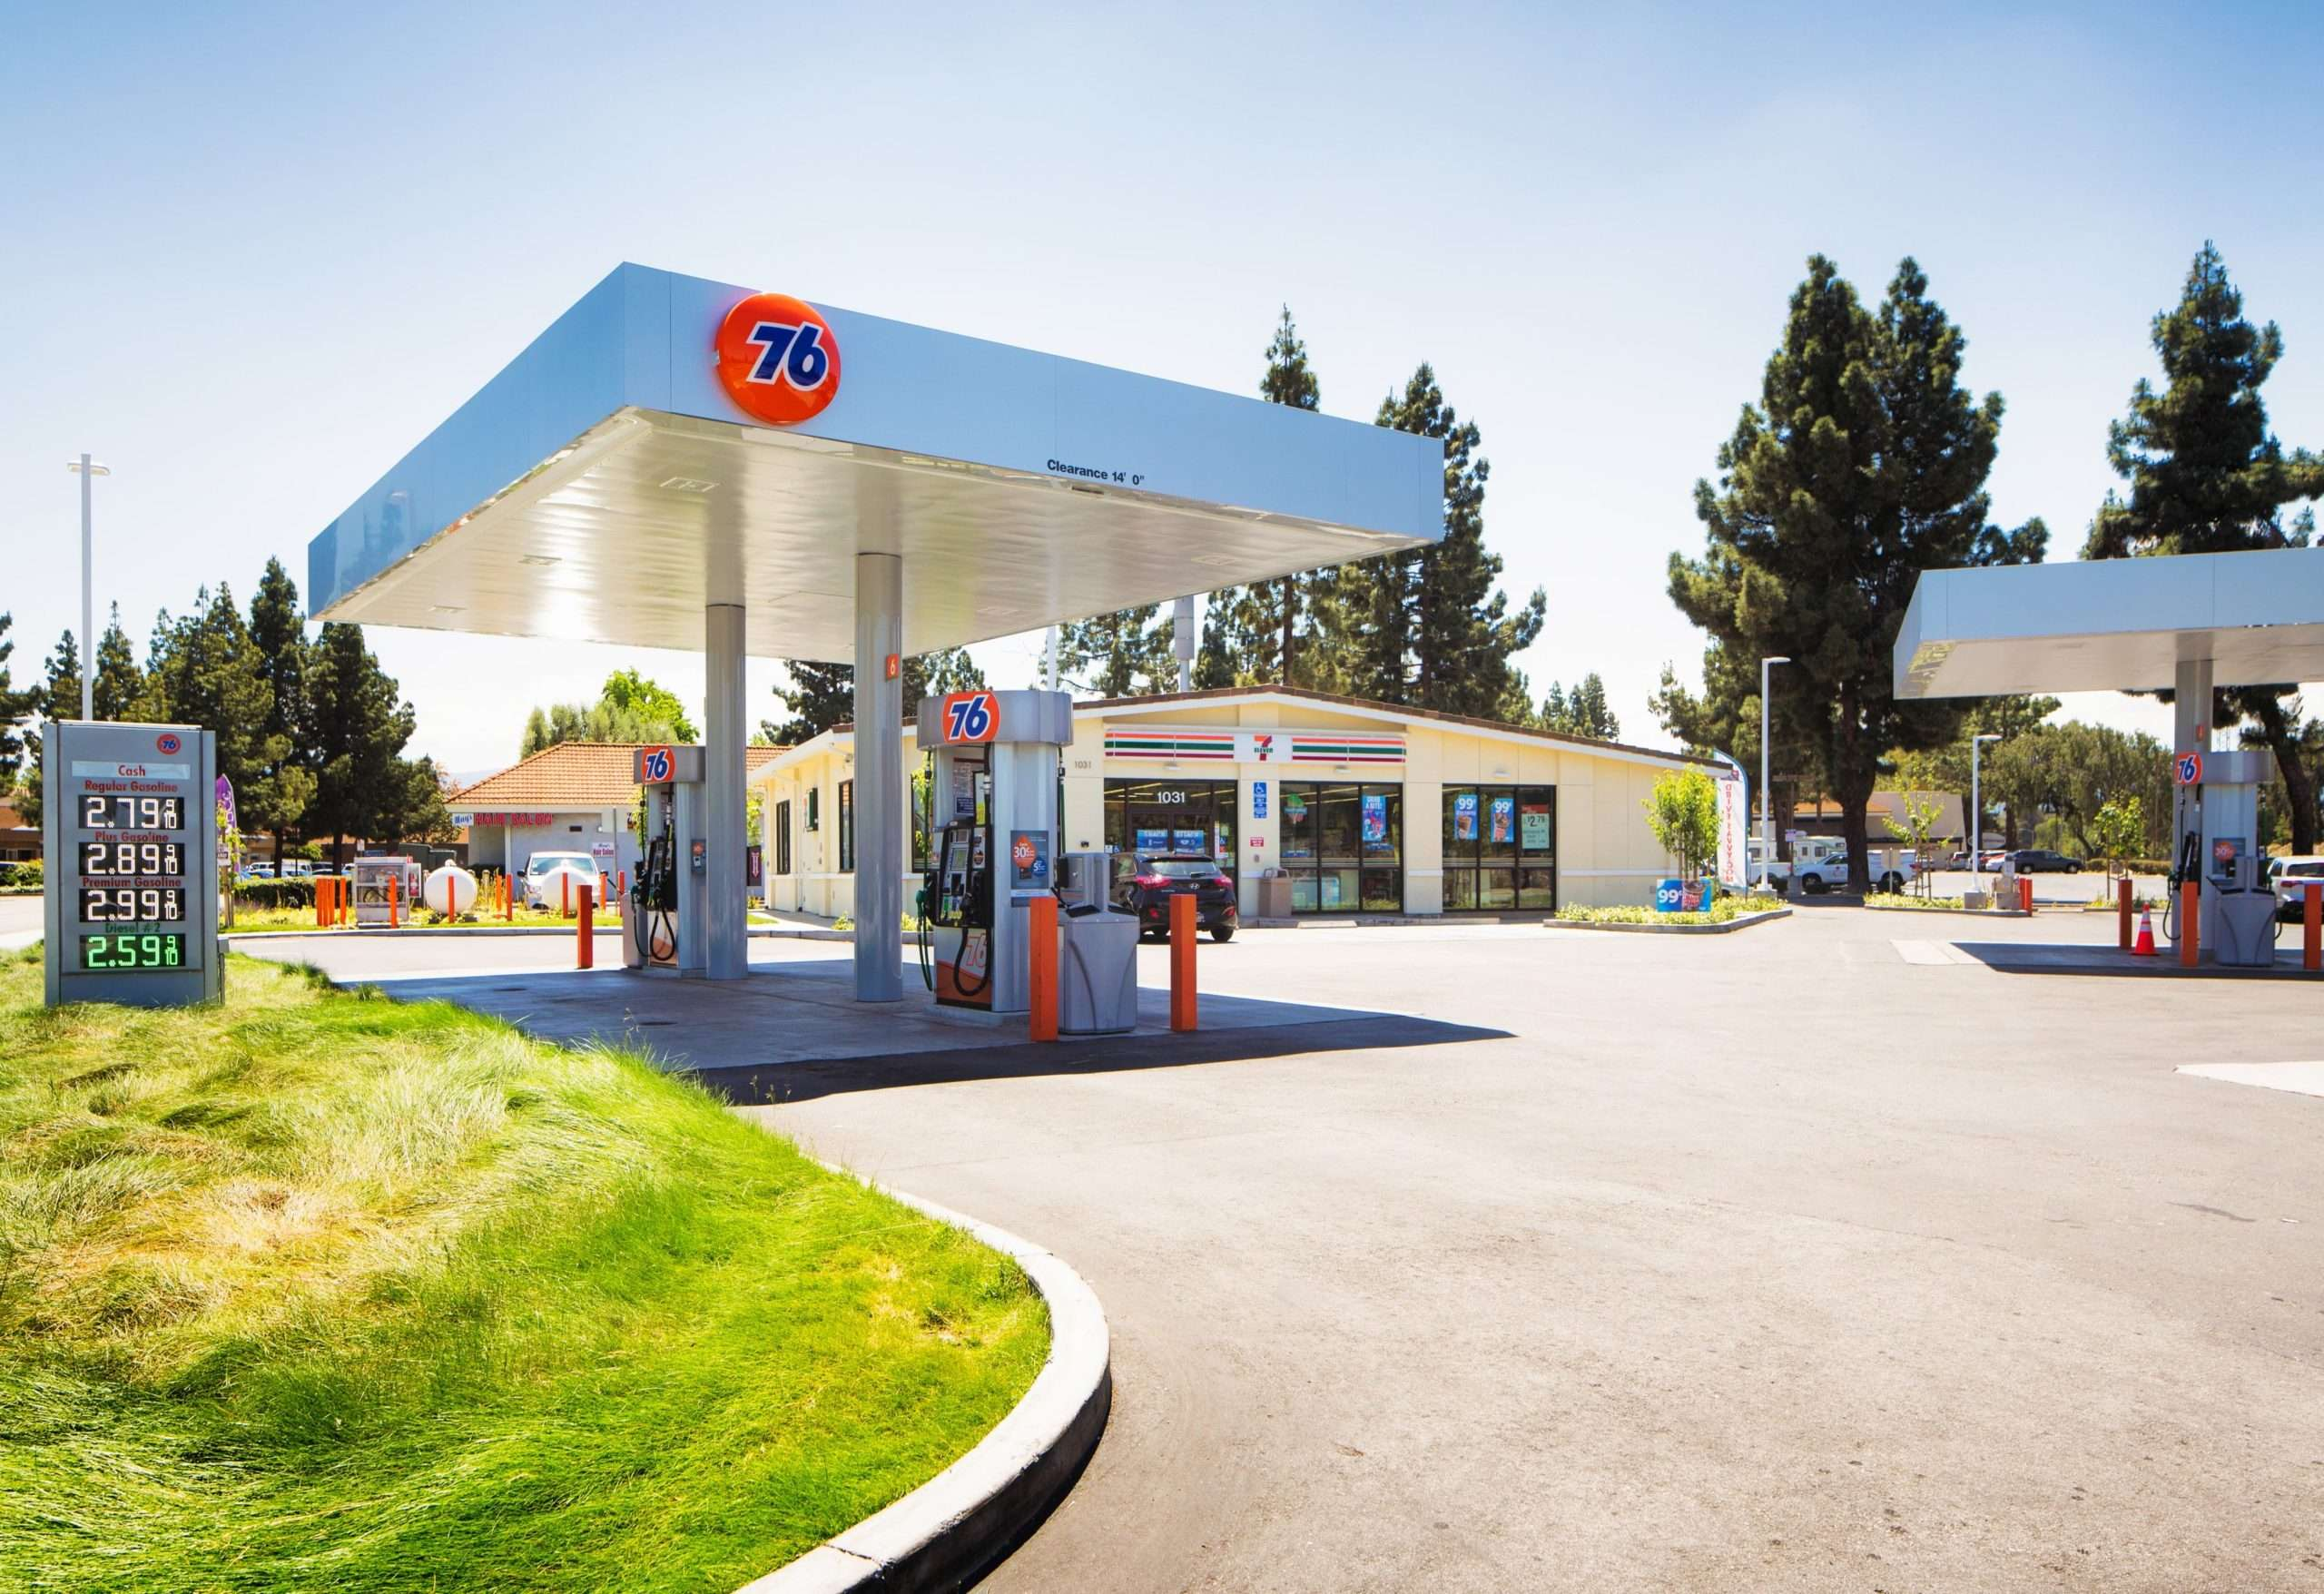 A 76 gas station viewed from afar